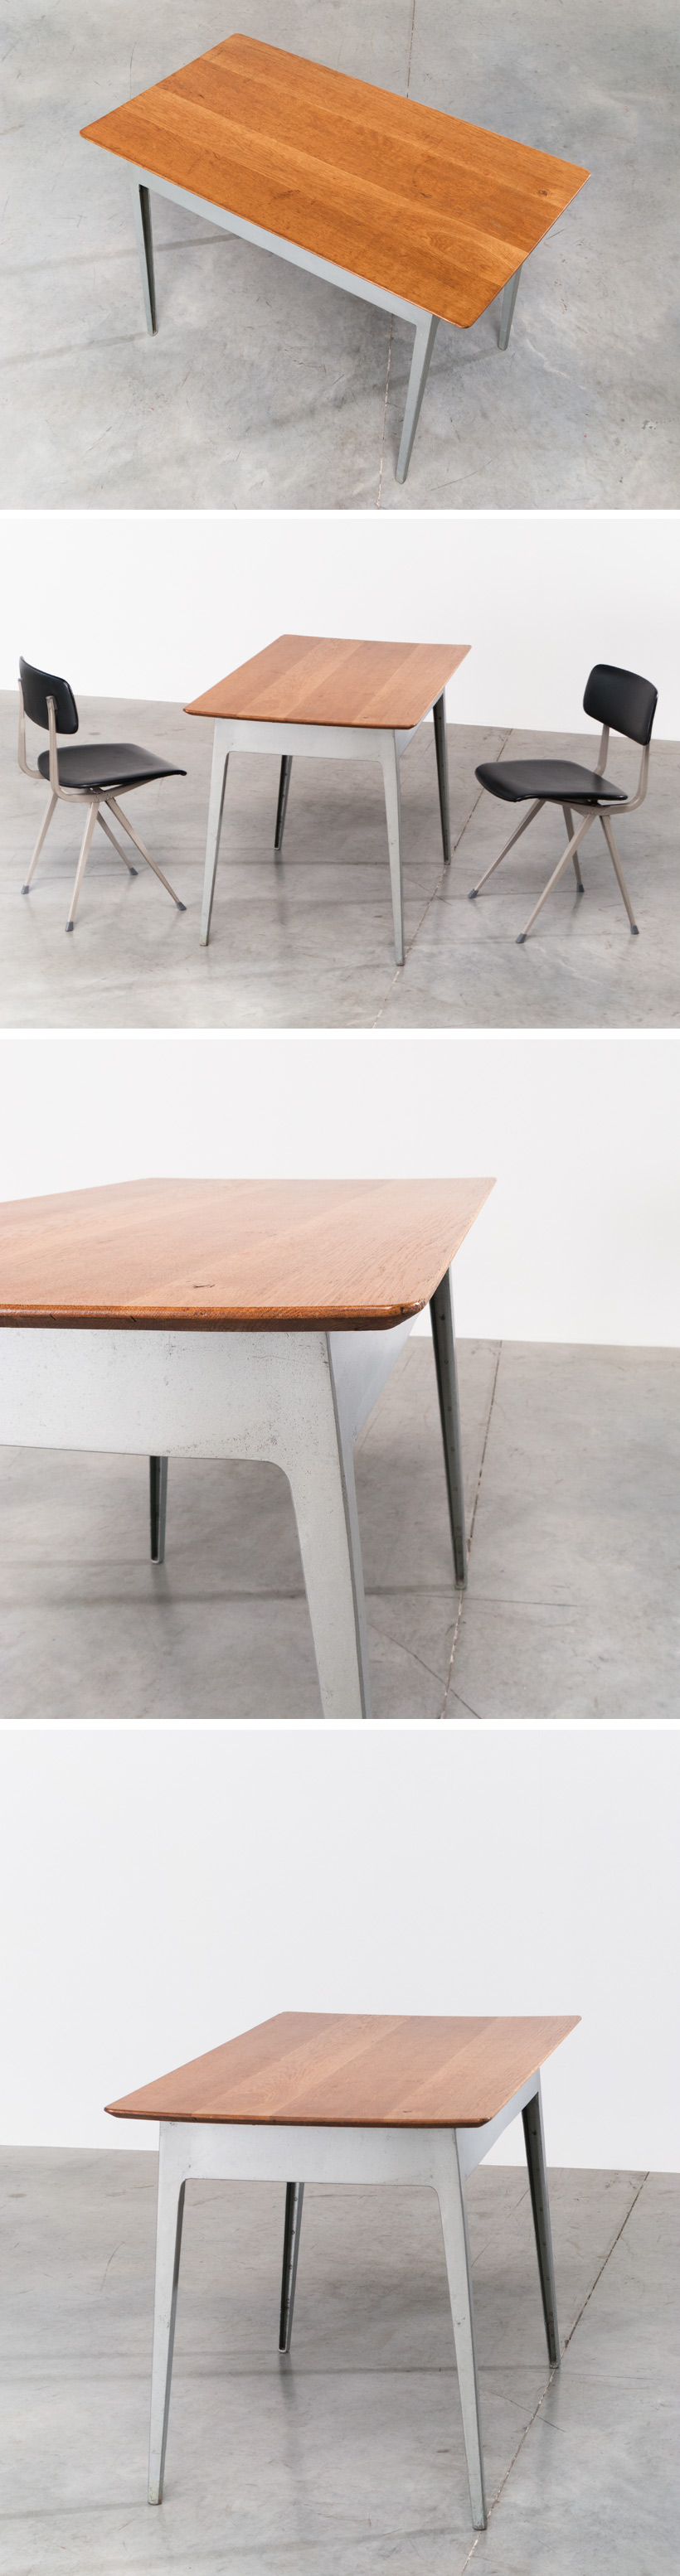 James Leonard industrial table for Esavian Large